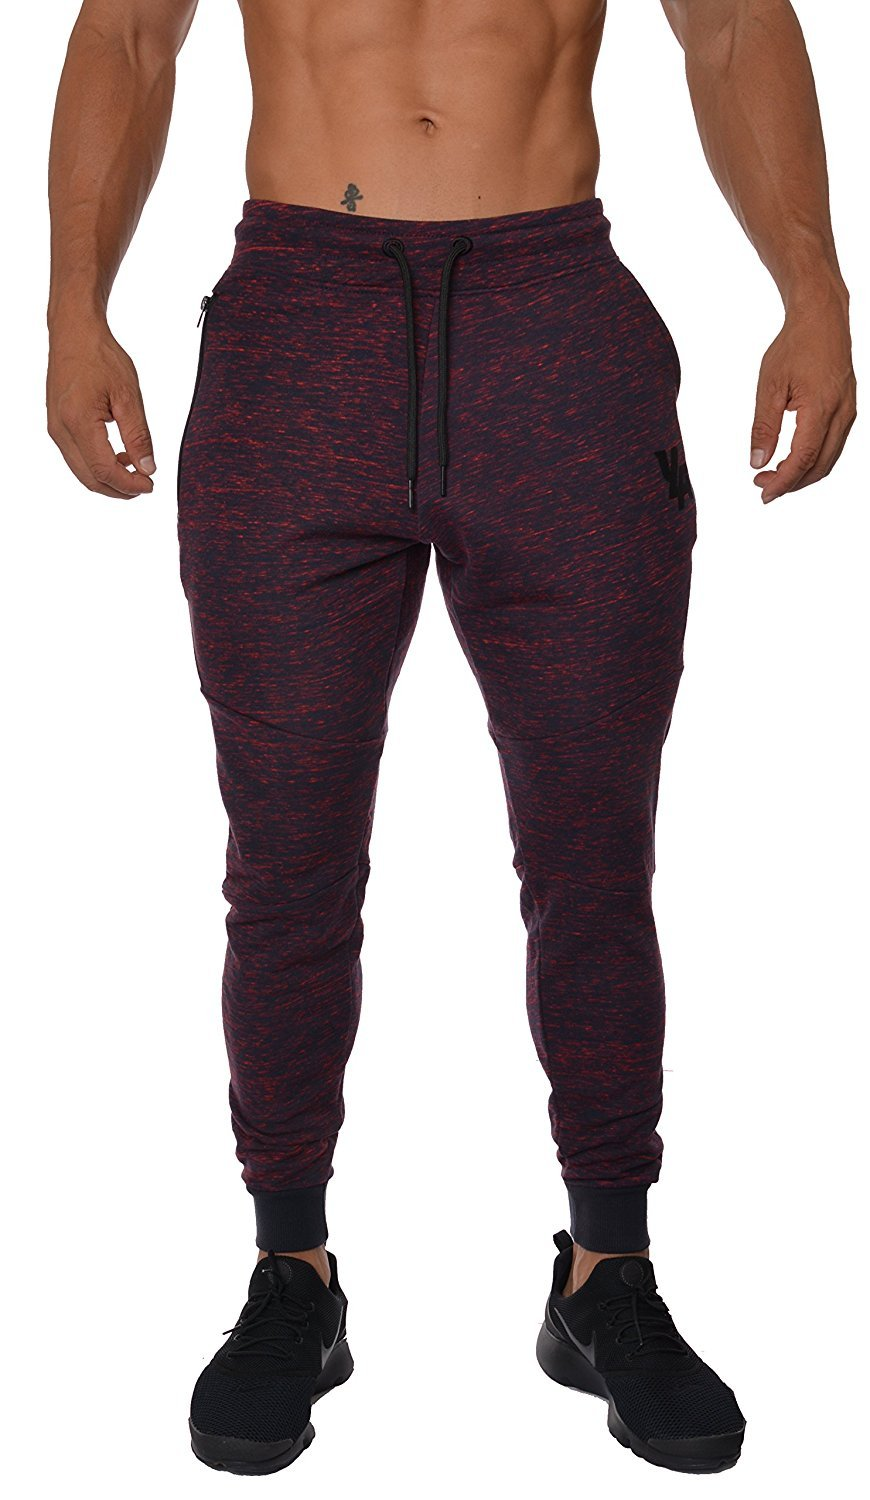 Taylor Heart Slim;Handsome French Terry Cotton Sweatpants Jogger Pants Red/NavyLarge